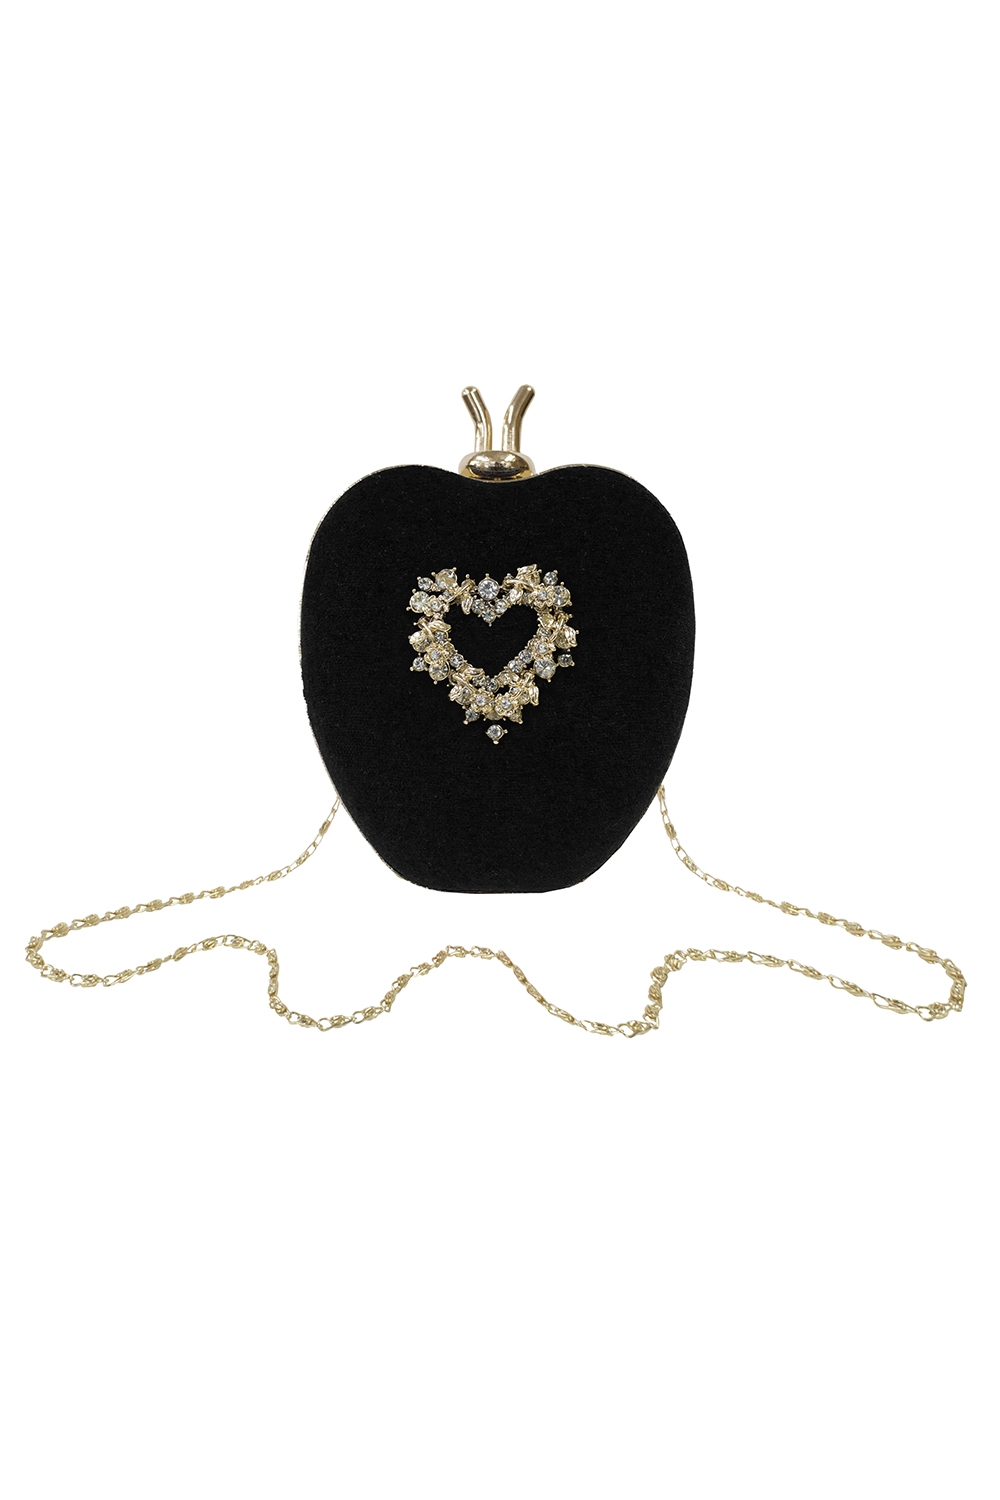 black velvet apple clutch bag